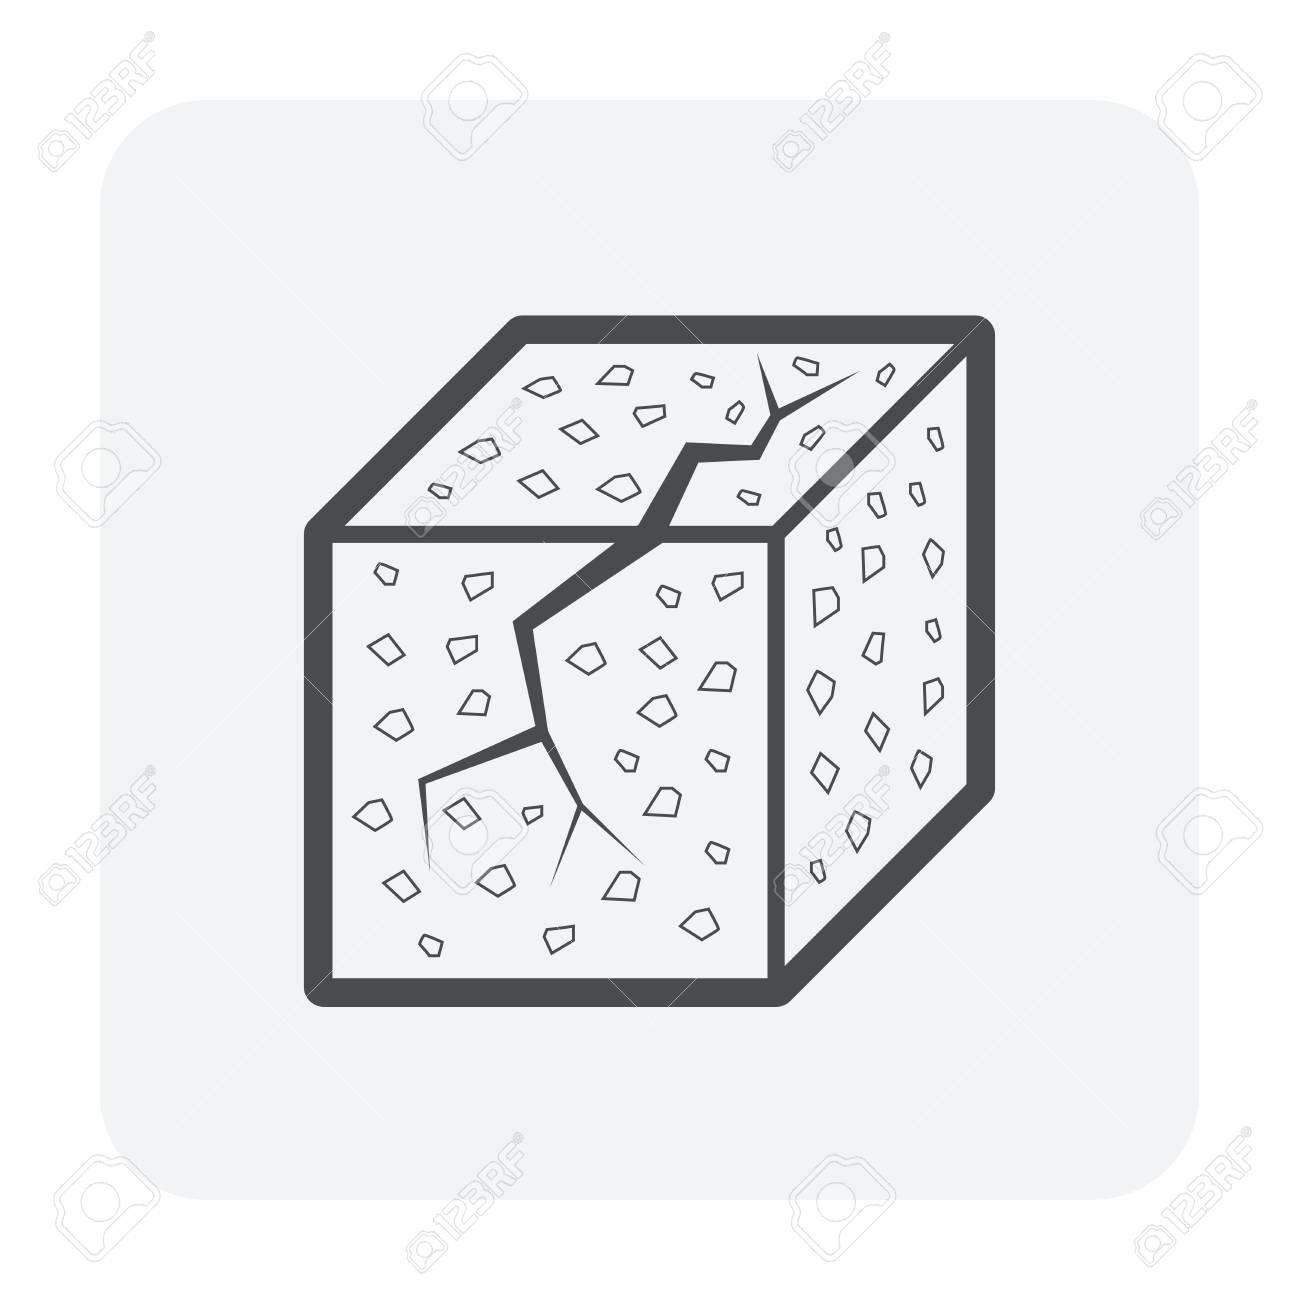 Concrete strength testing icon, outline and black color. - 111589358